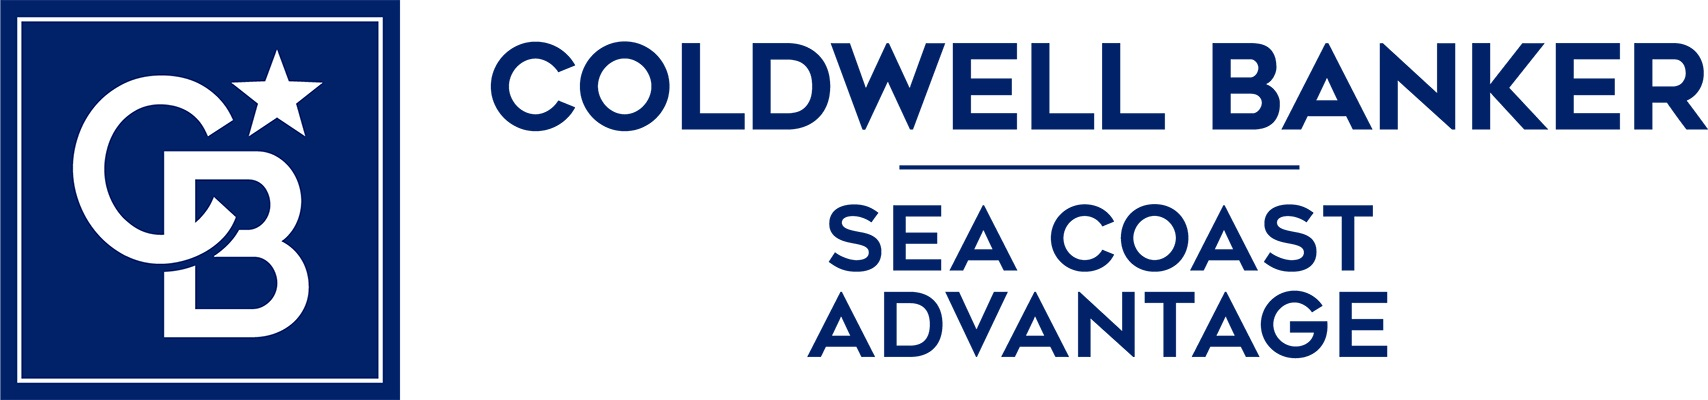 Kim Sunday - Coldwell Banker Sea Coast Advantage Realty Logo